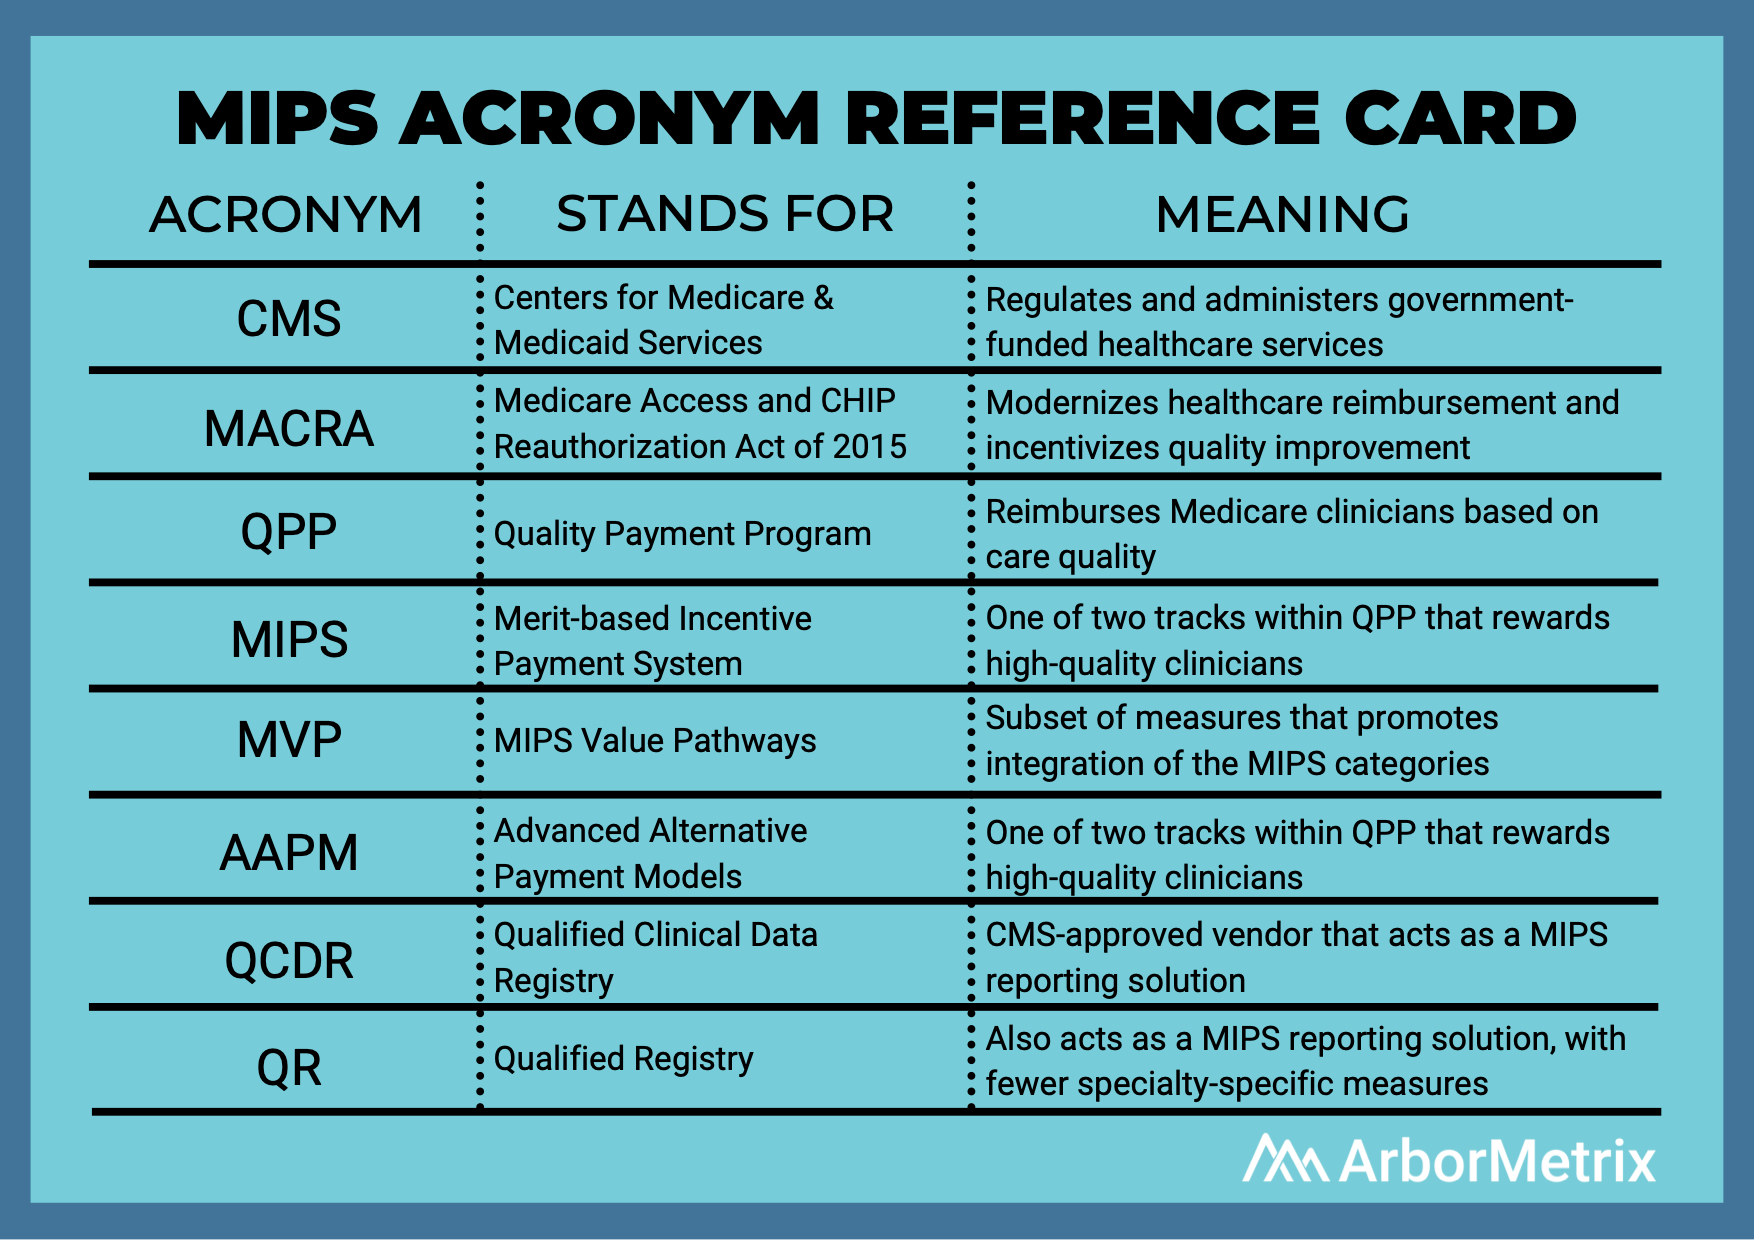 MIPS acronym reference card